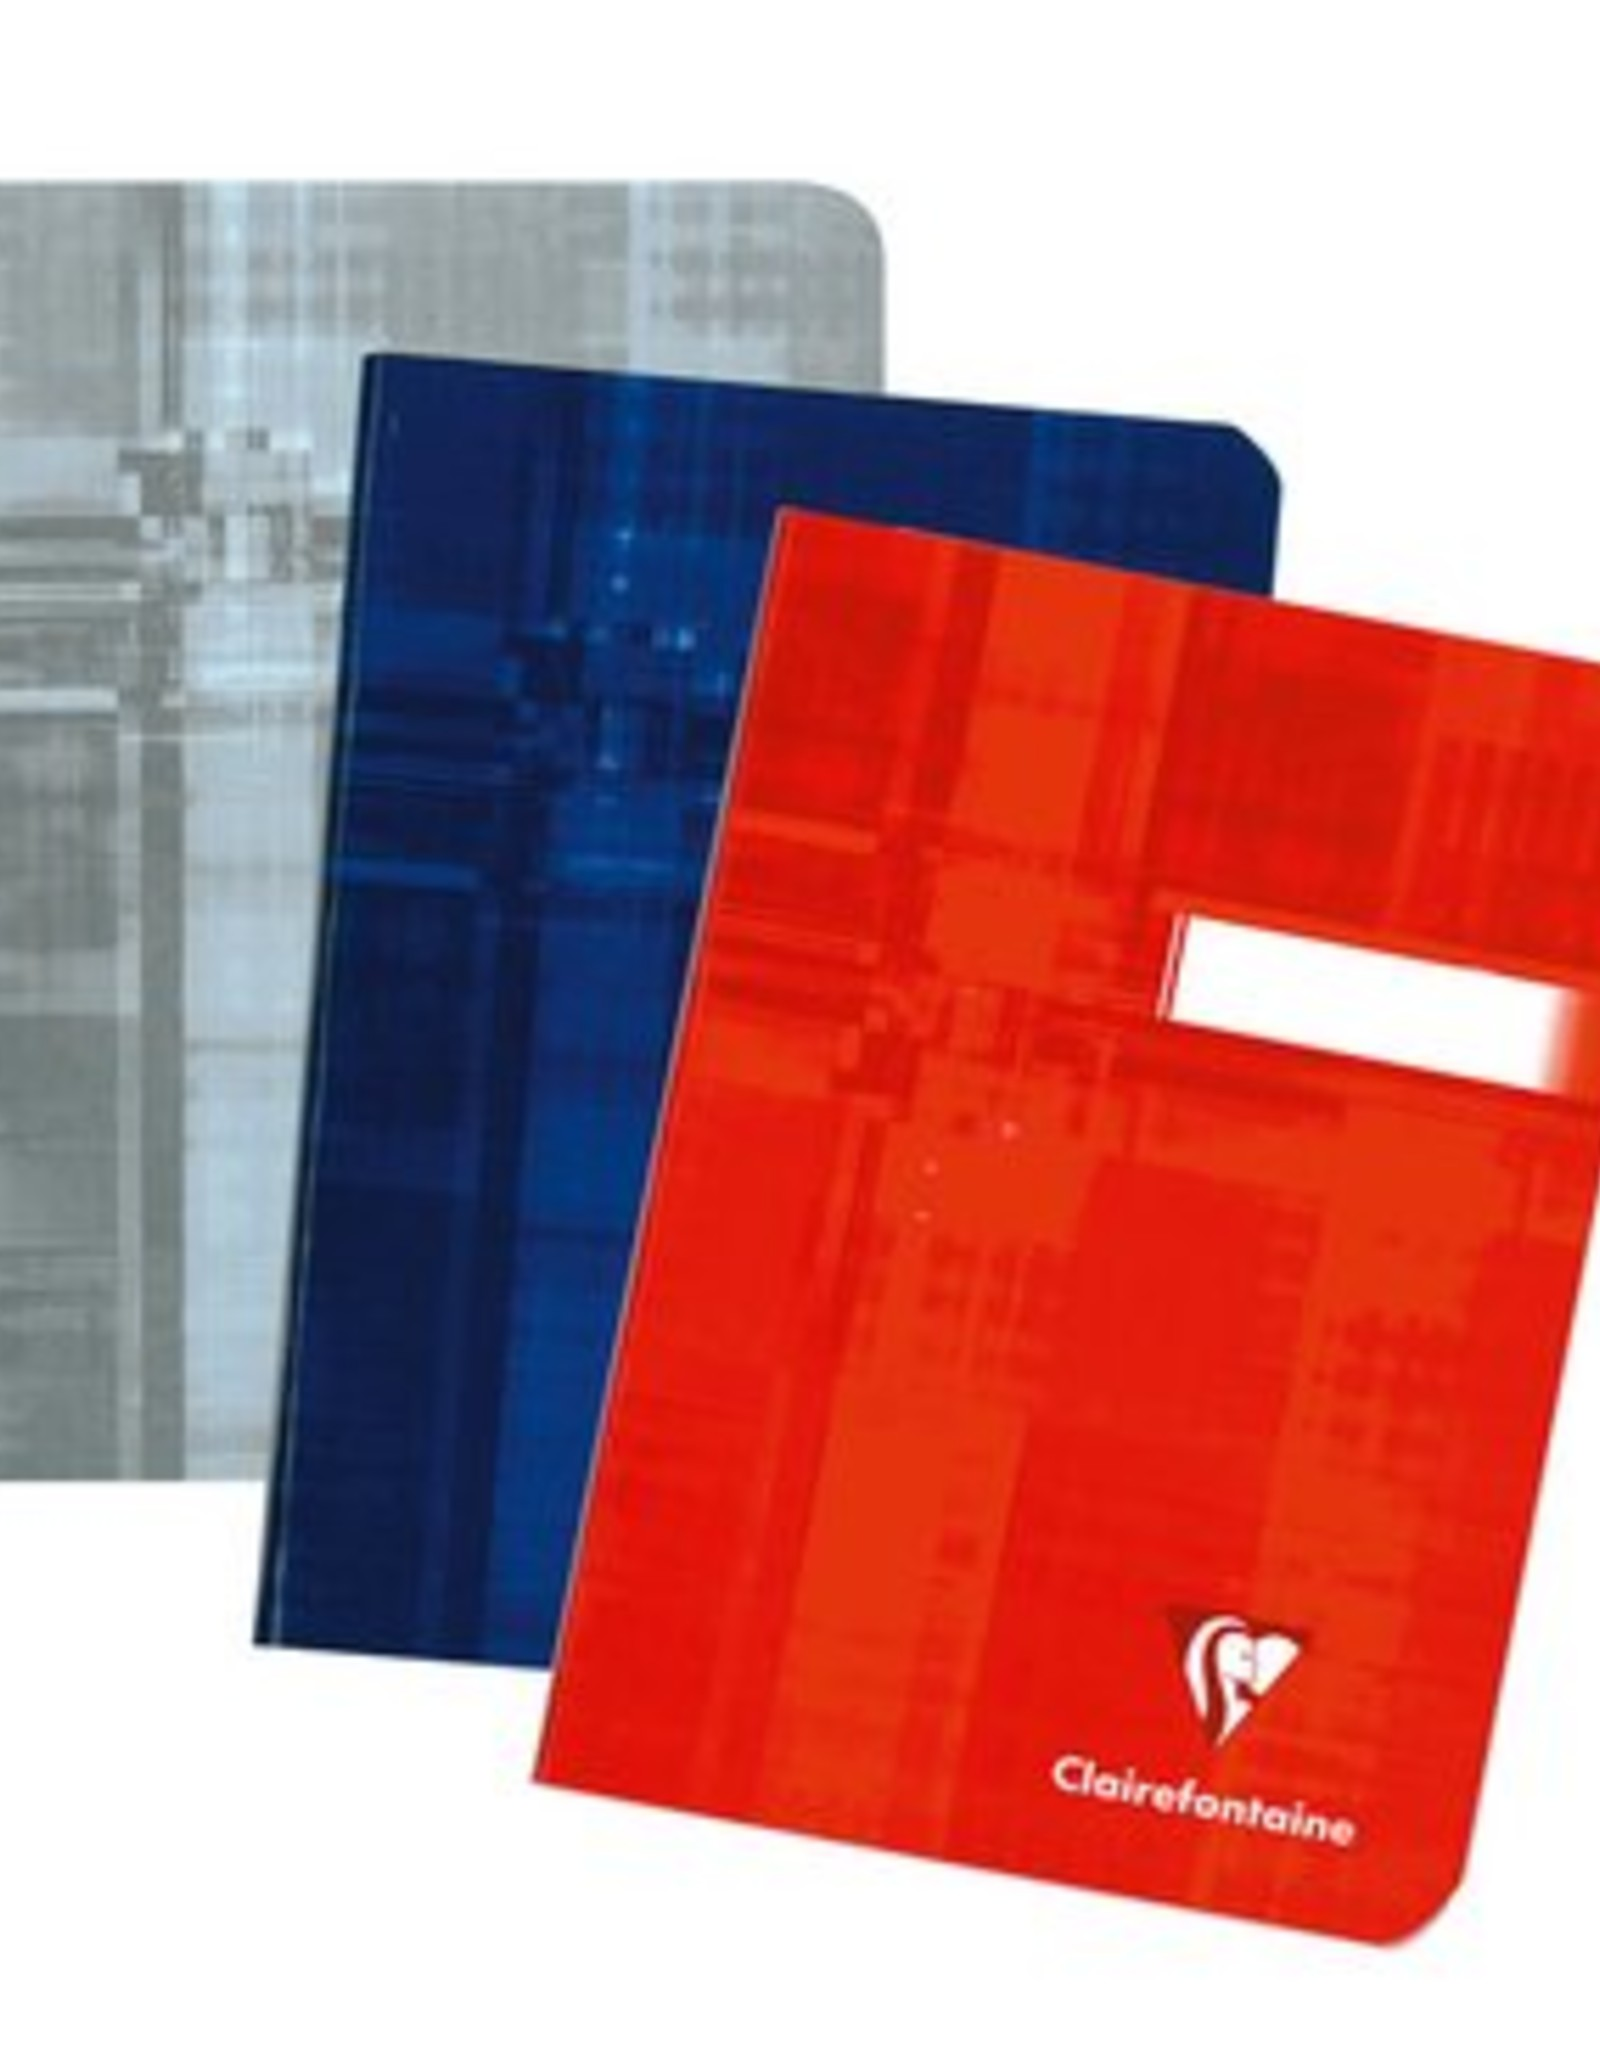 CLAIREFONTAINE Staplebound Ruled 4.25 x 6.75